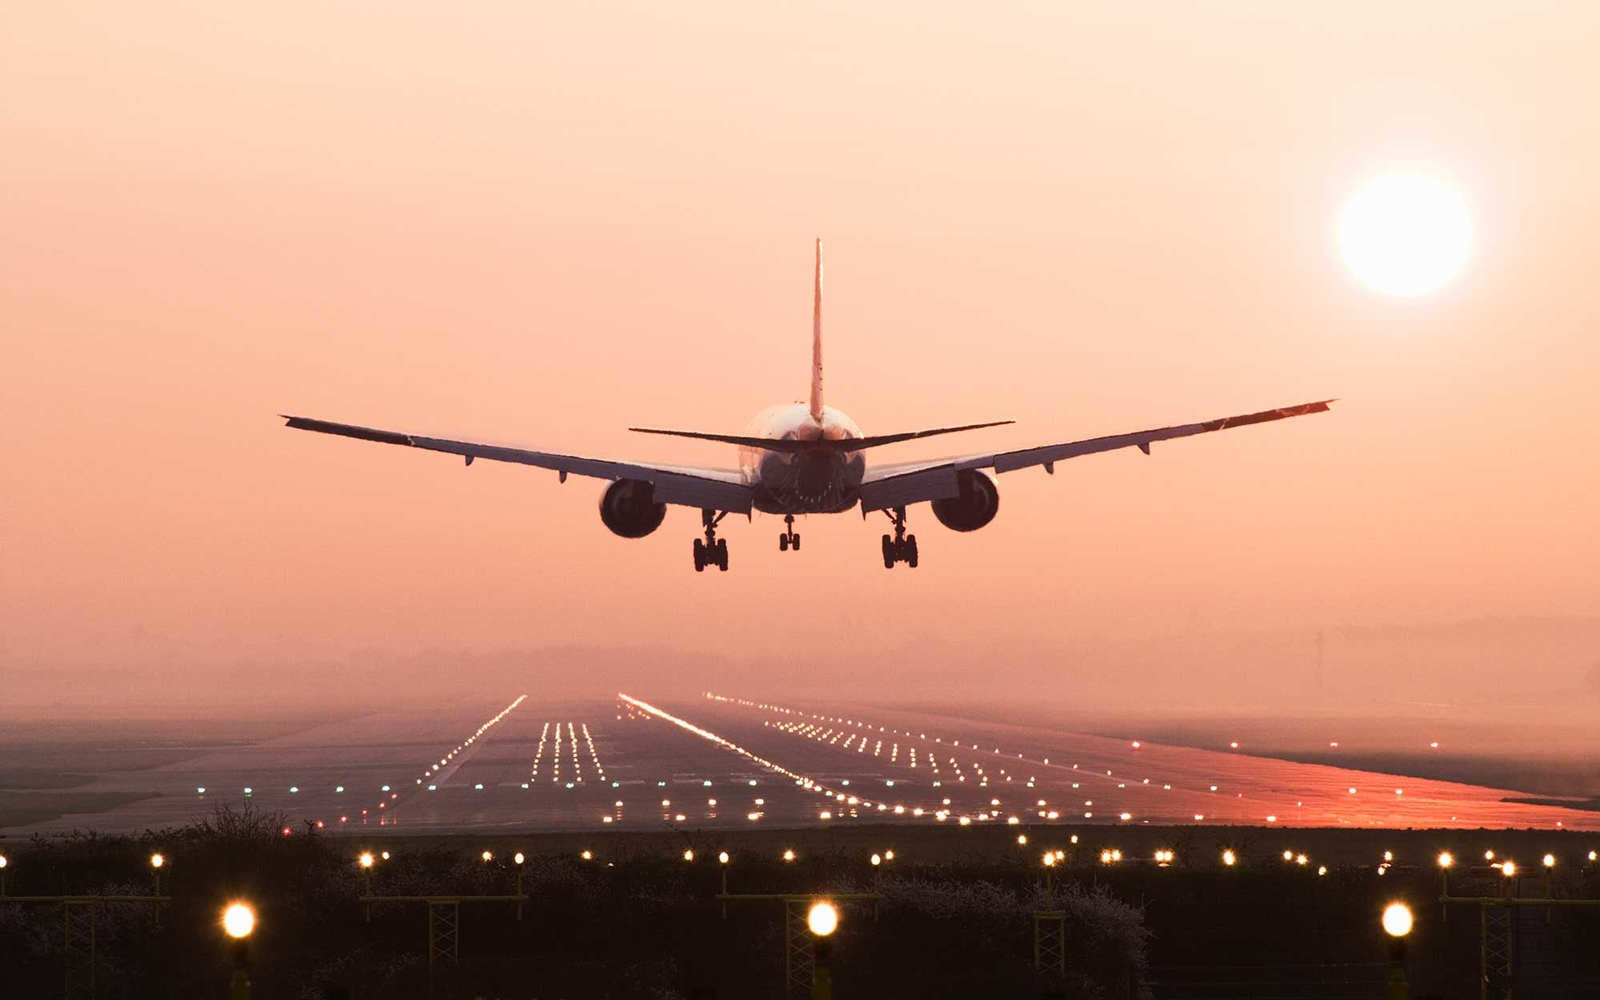 Aircraft landing on the Roissy runway